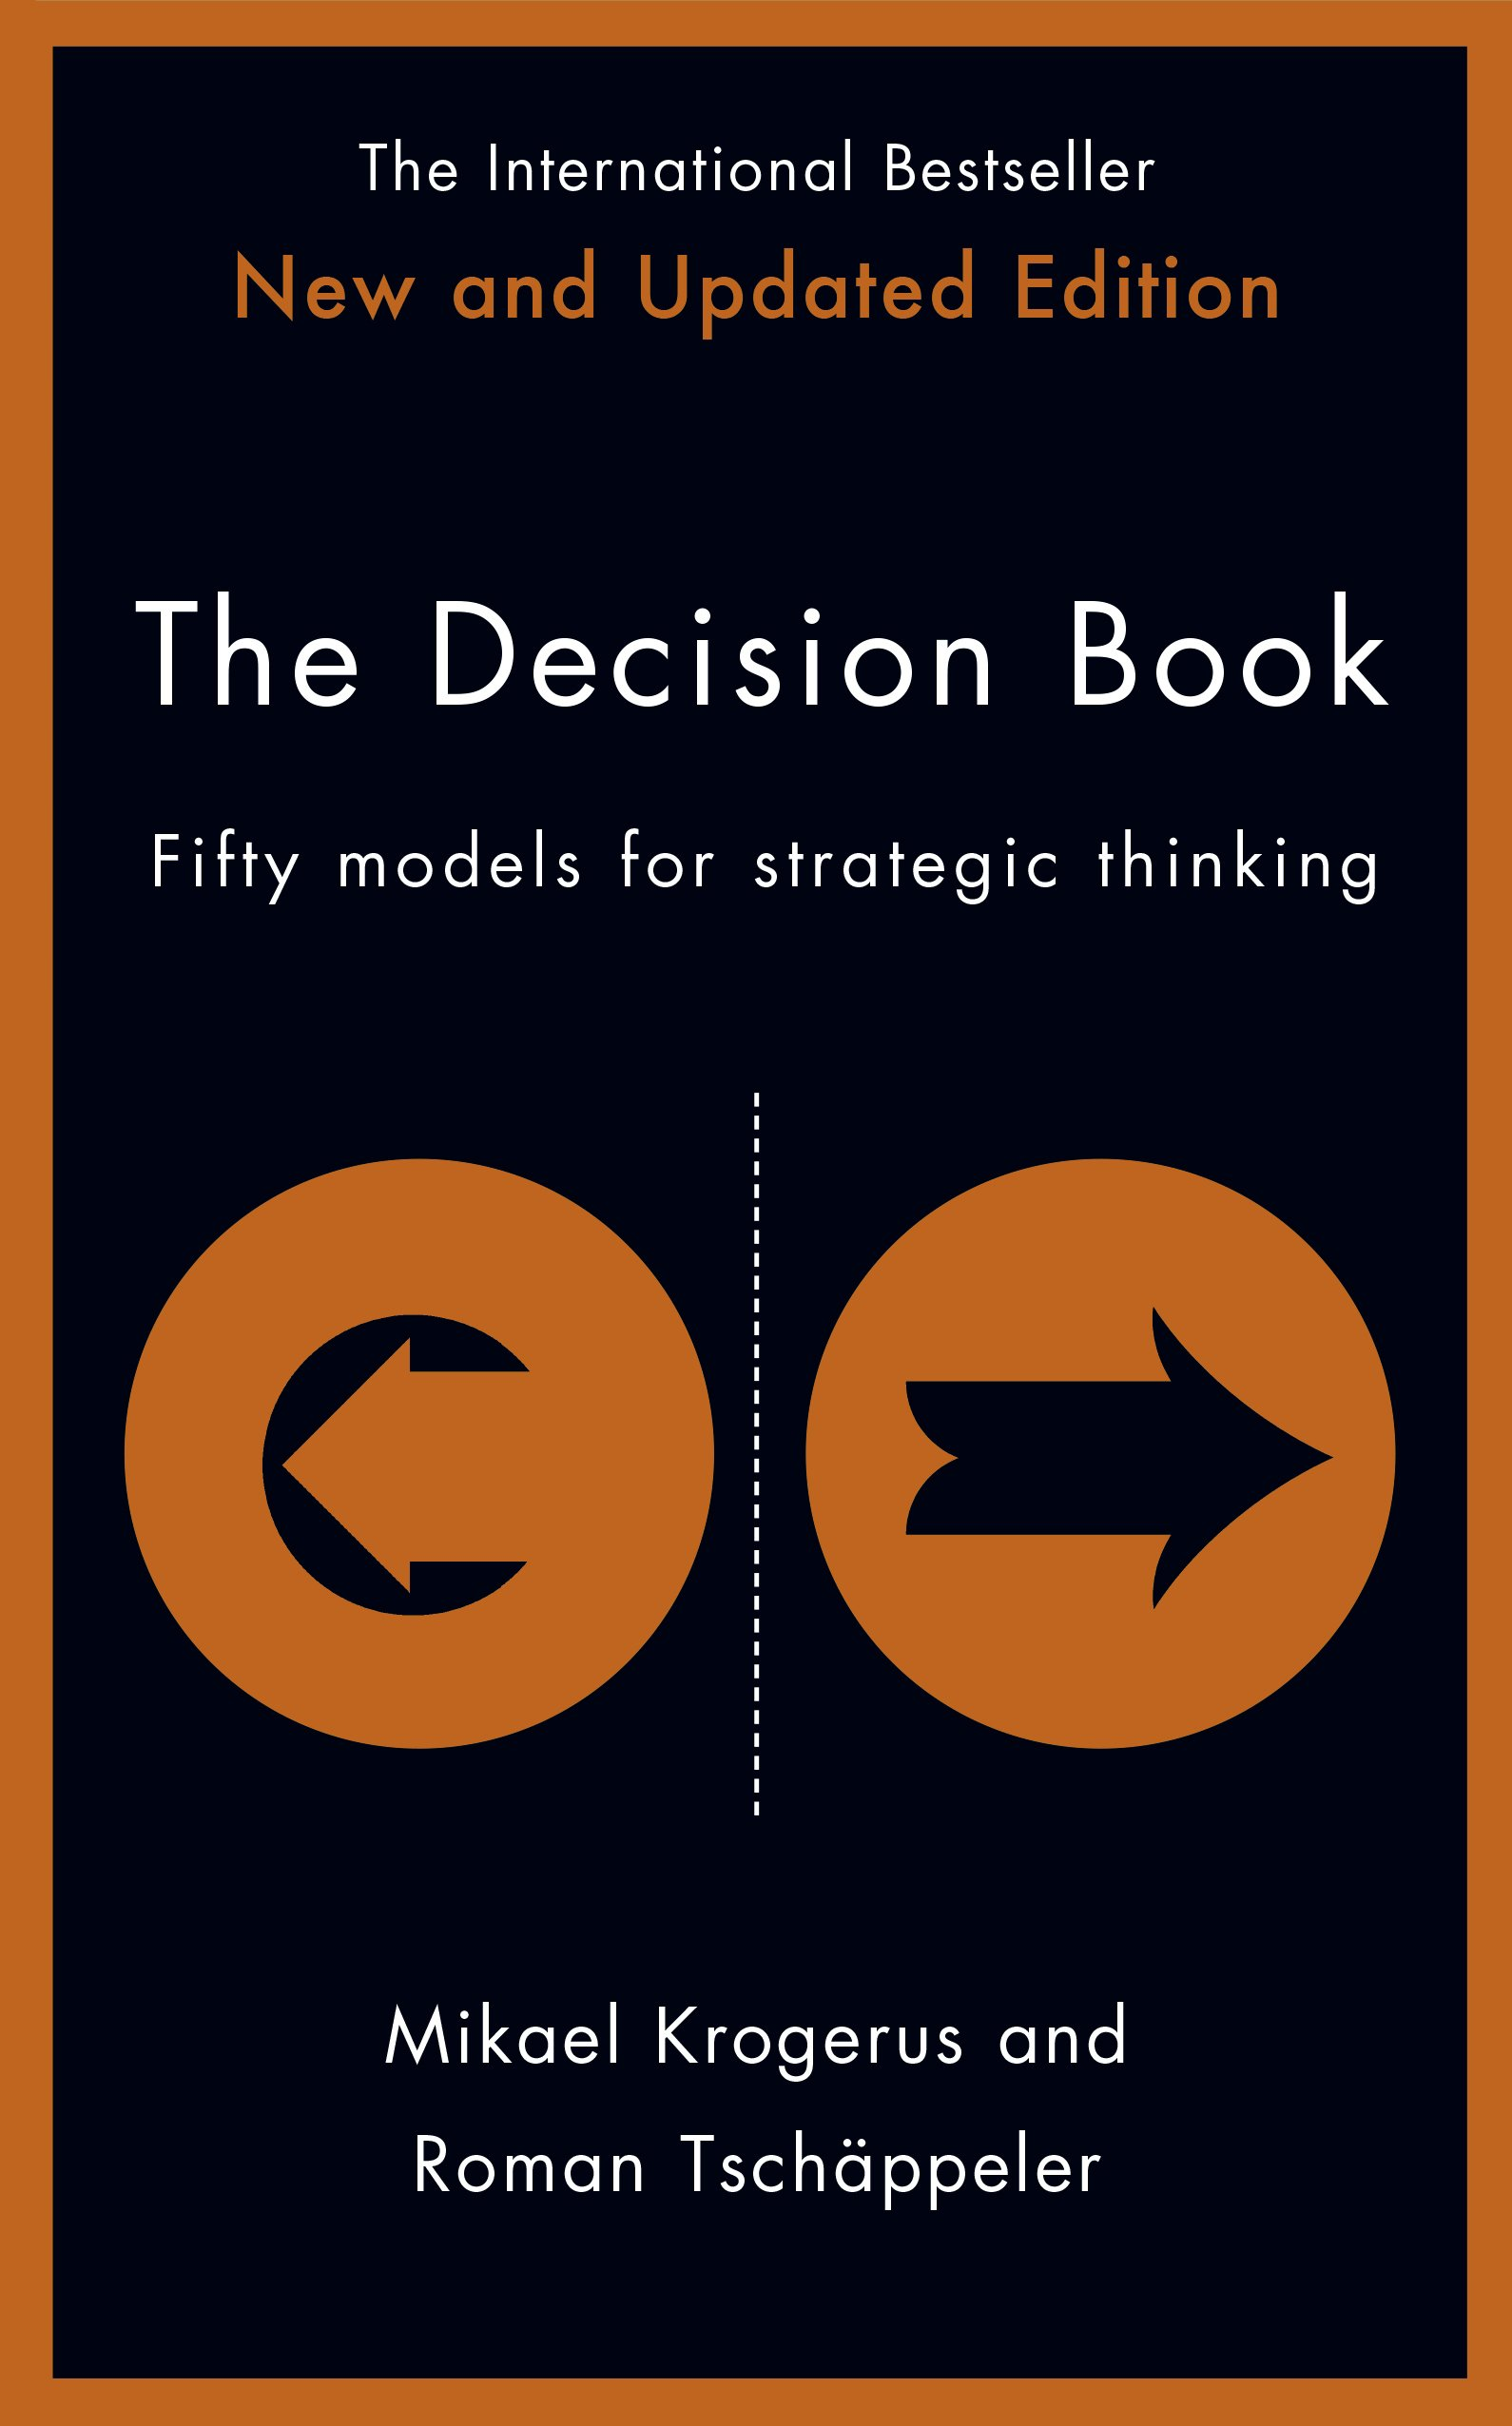 the decision book.jpg